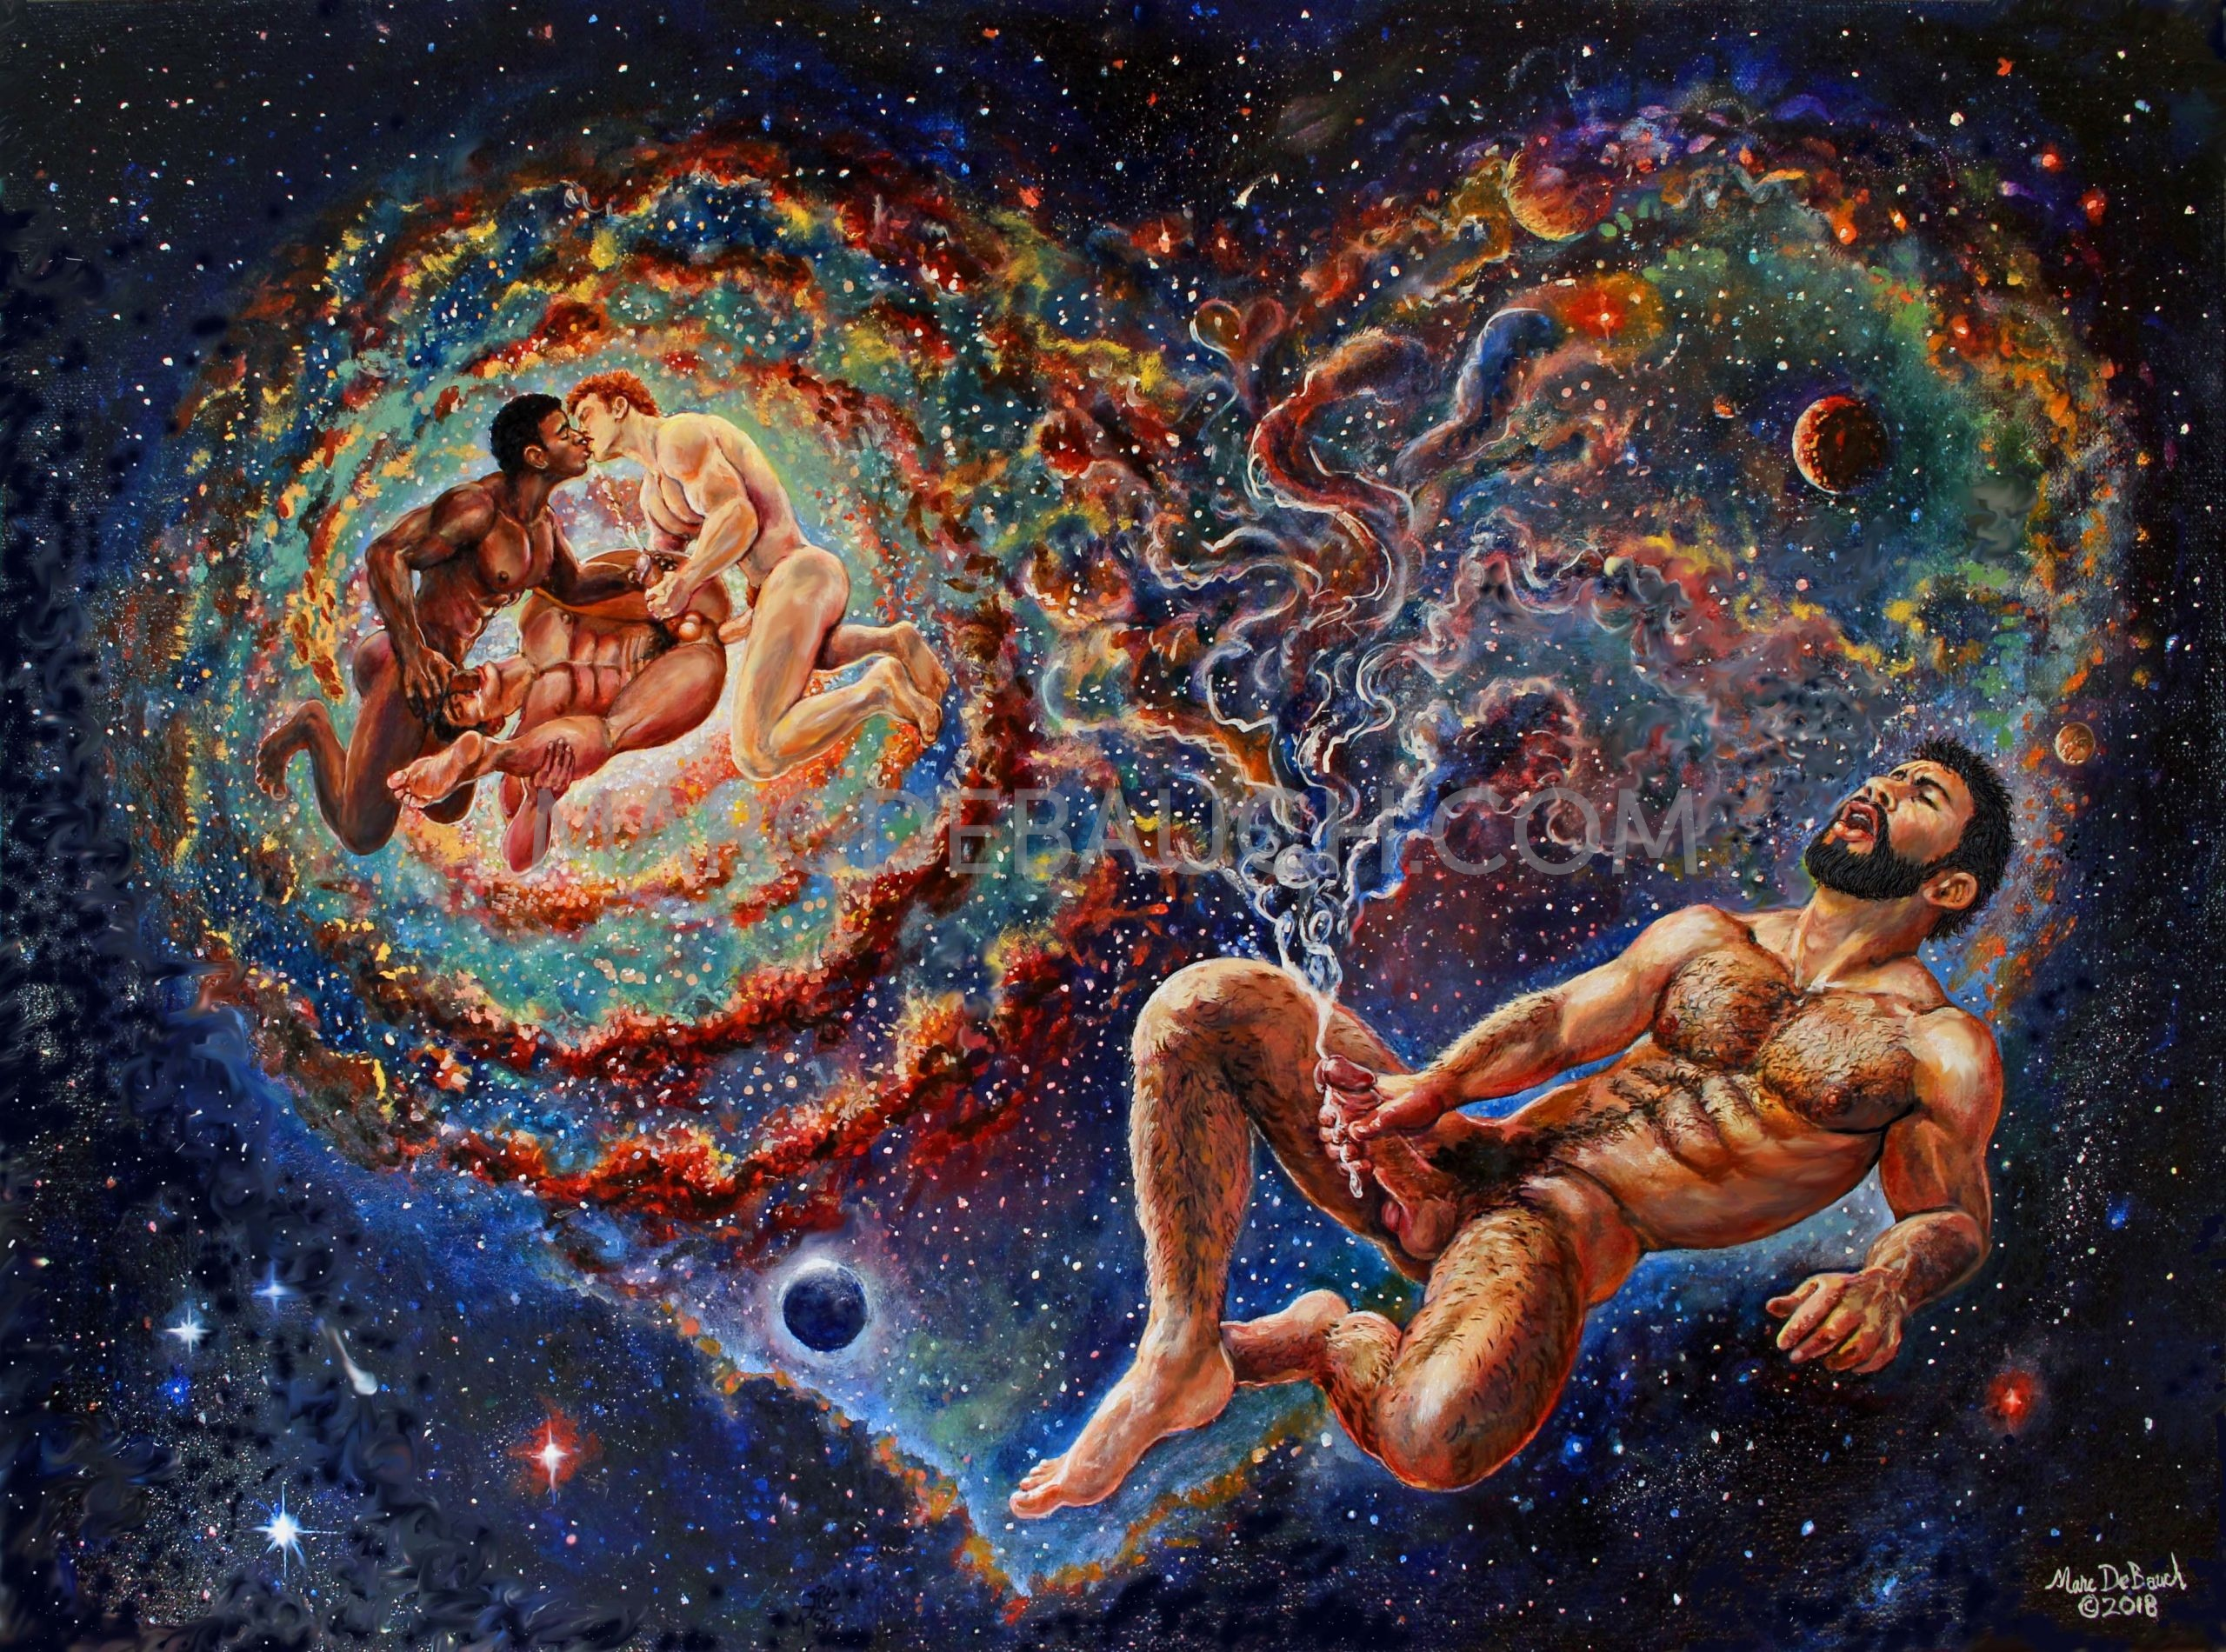 COSMIC LOVE, COSMIC LUST